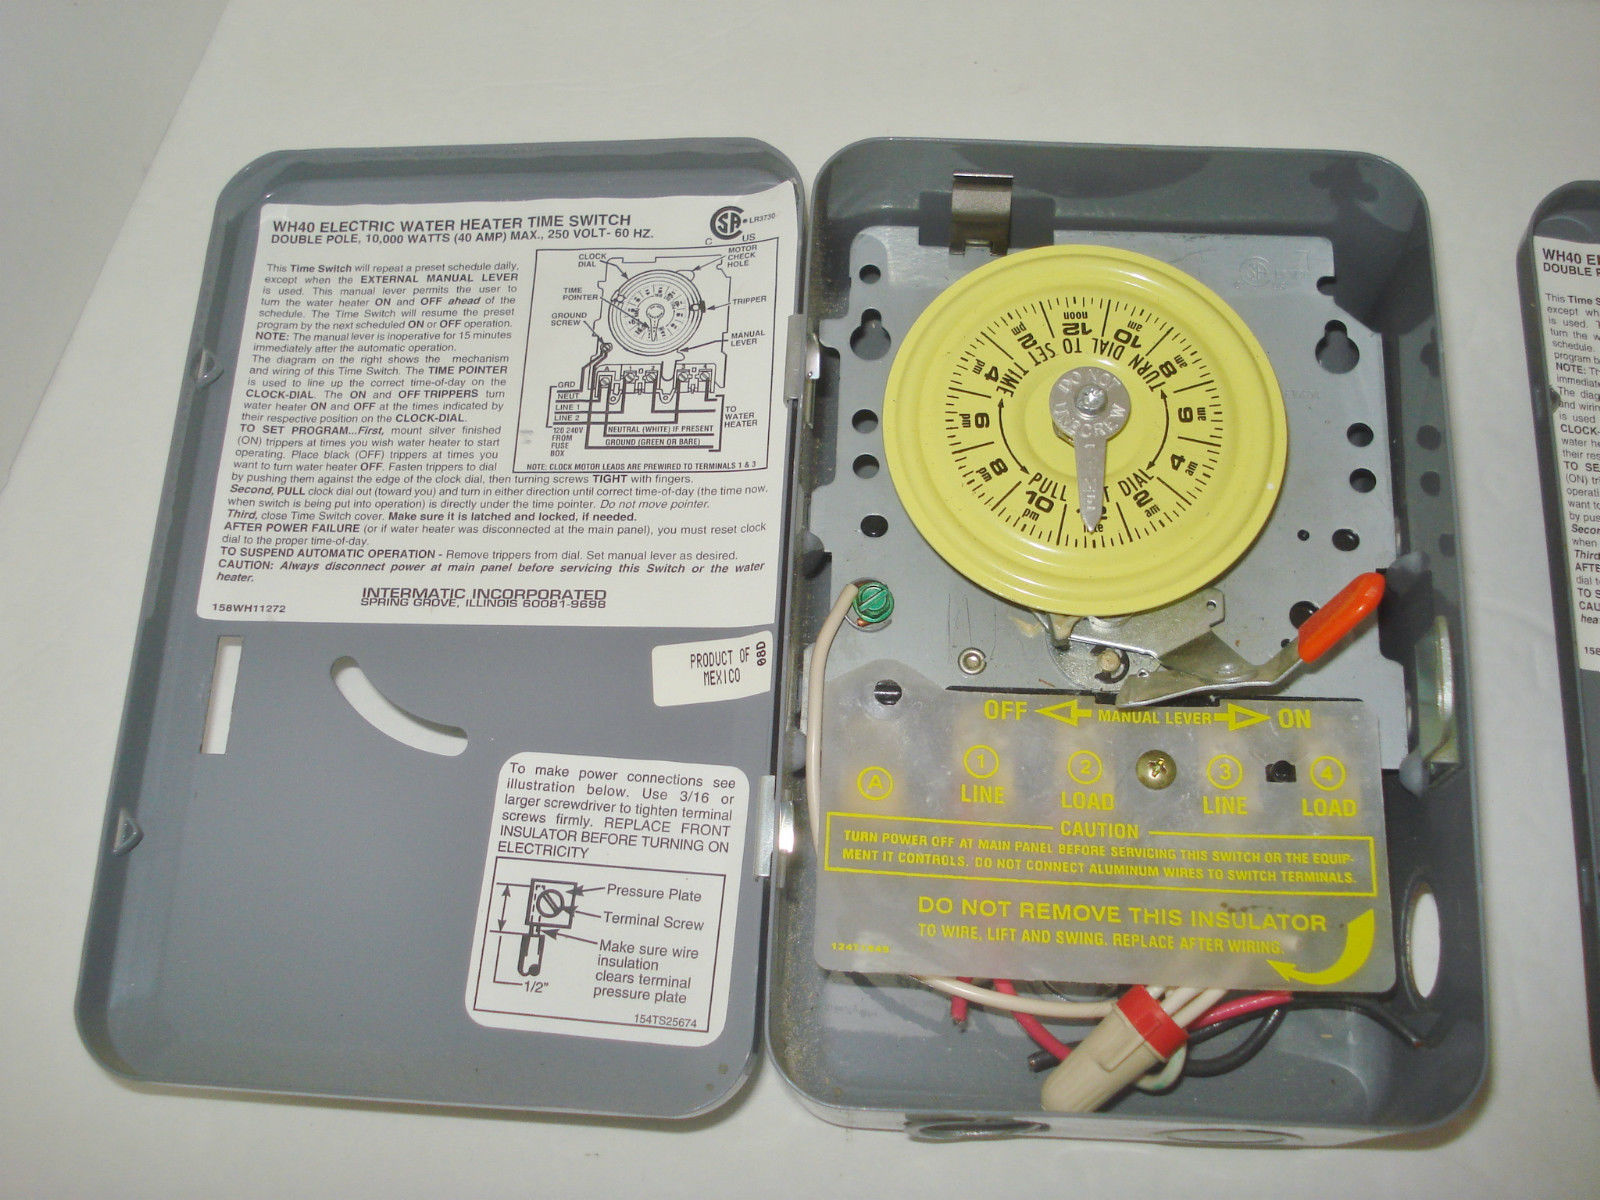 set of 2 intermatic wh40 electric water heater timer ... 2002 chevy express fuse box diagram lil gray box diagram #8